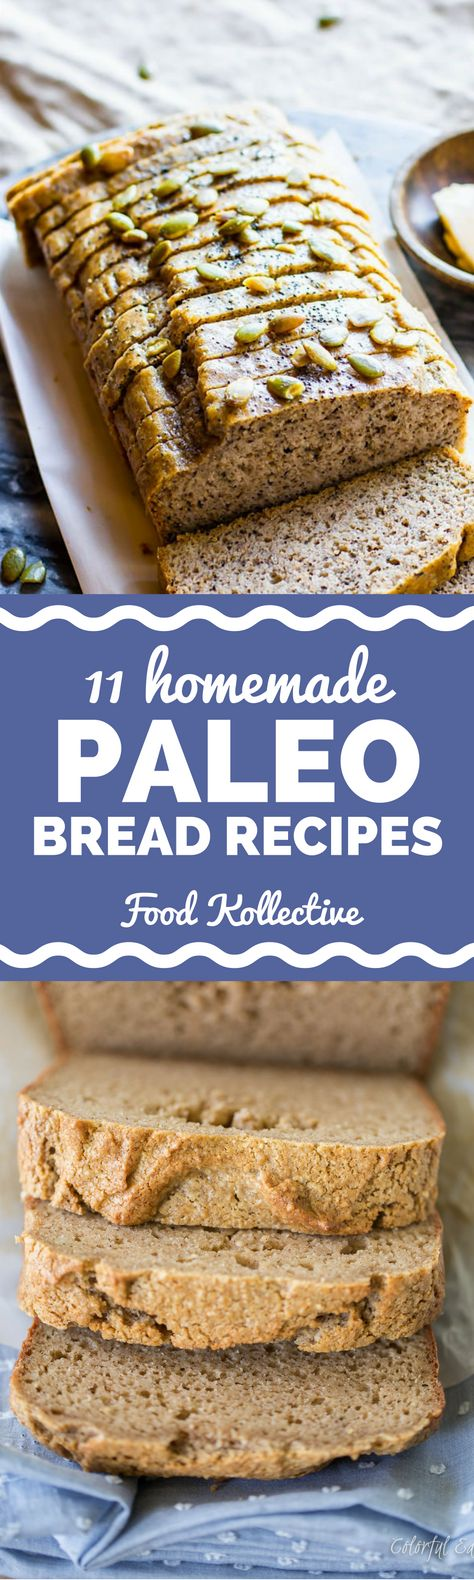 I'm always looking for new homemade Paleo bread recipes and these look super good! There are recipes for Paleo sandwich bread, Paleo french bread, and more. Ingredients include almond flour, coconut flour, banana, zucchini, pumpkin, etc. So much better than store bought bread! Collected on FoodKollective.com